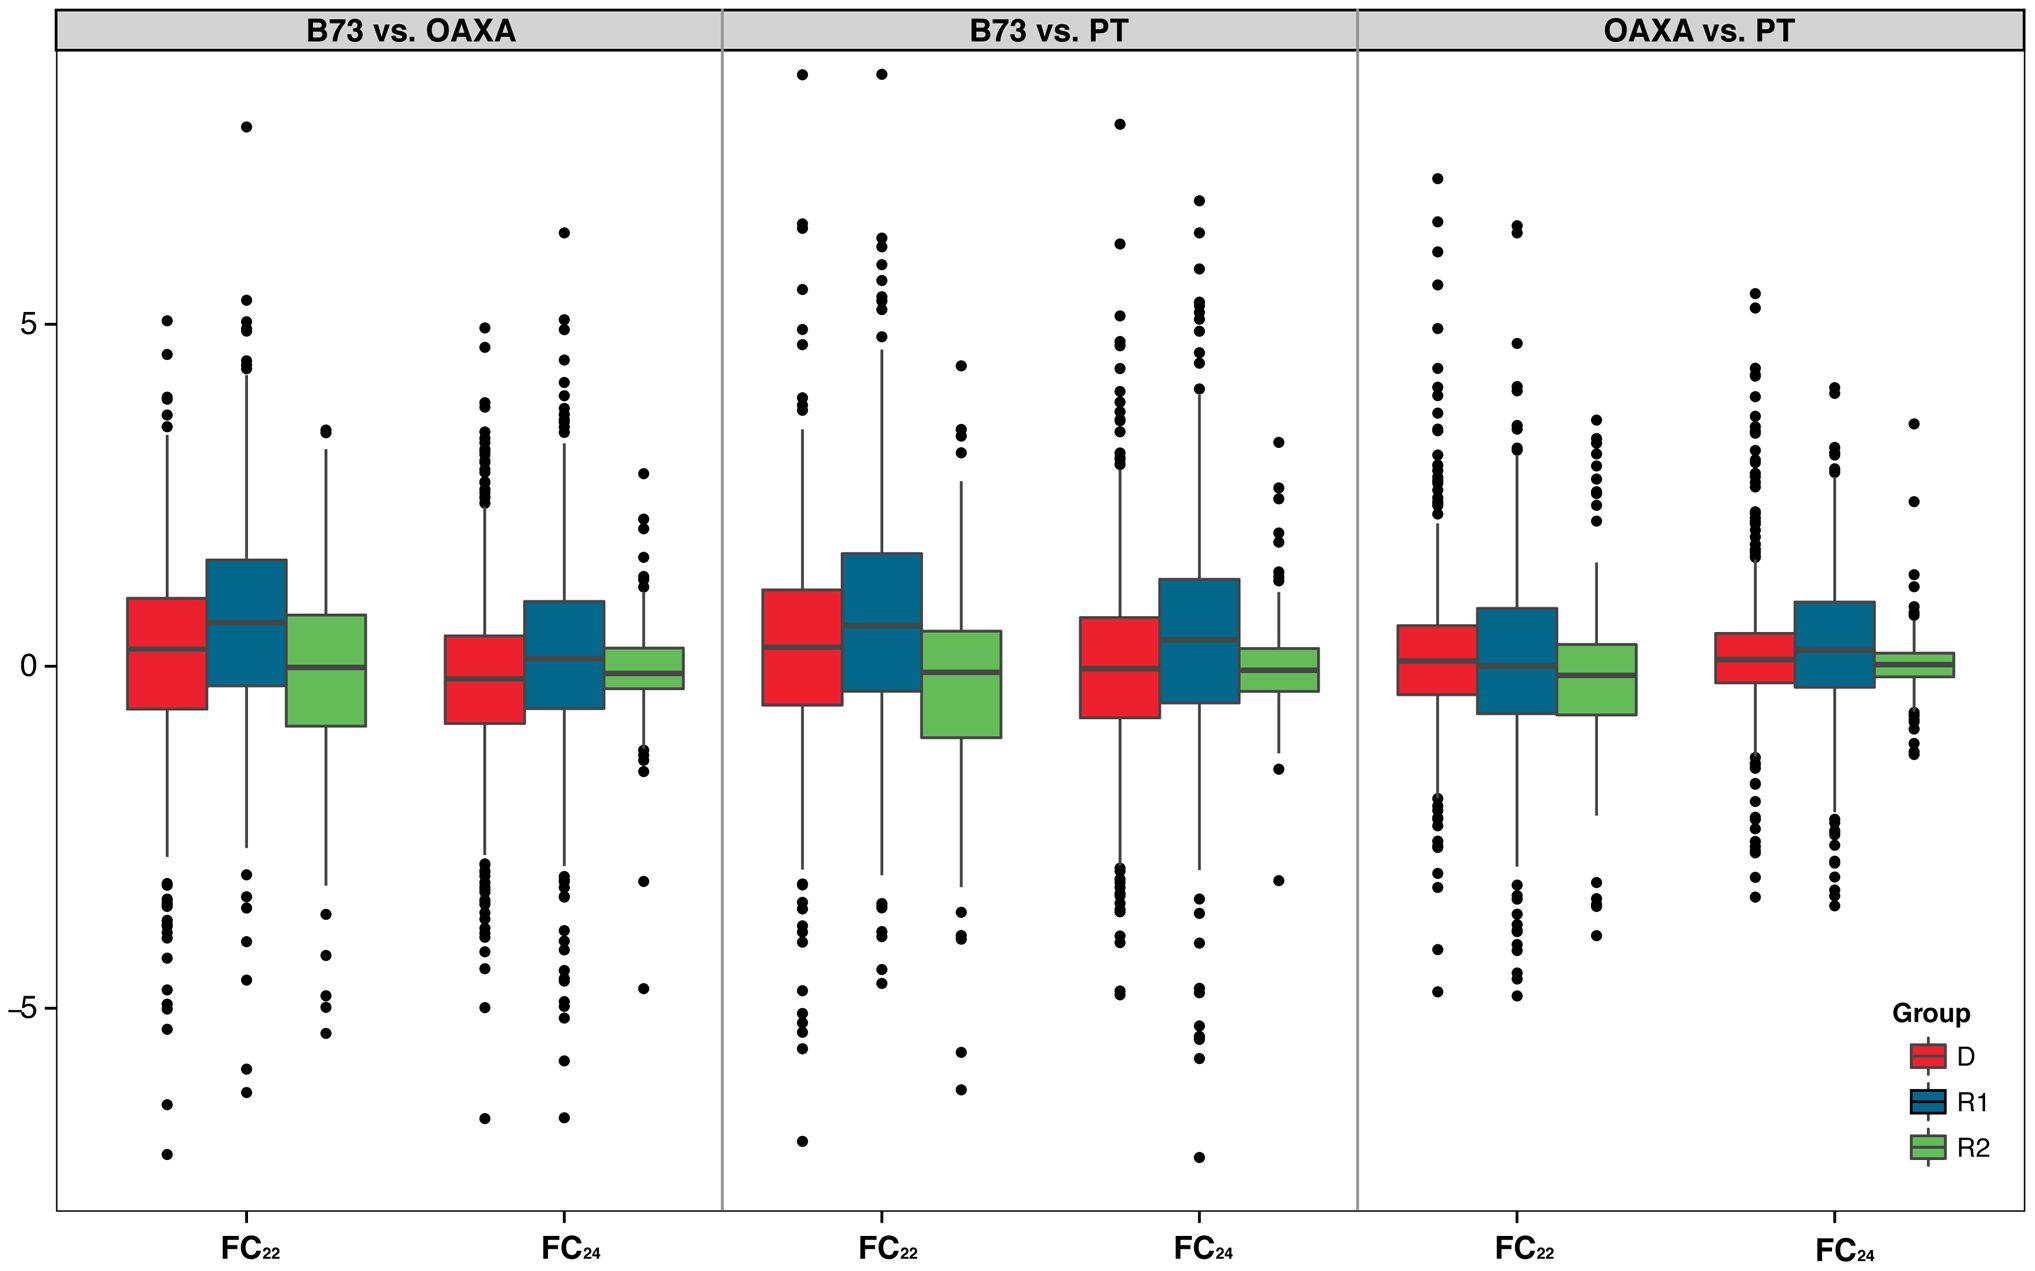 Boxplots of Fold Change in 22(FC<sub>22</sub> and FC<sub>24</sub>) between accessions (B73, PT and OAXA), based on normalization by the upper quartile (Methods).